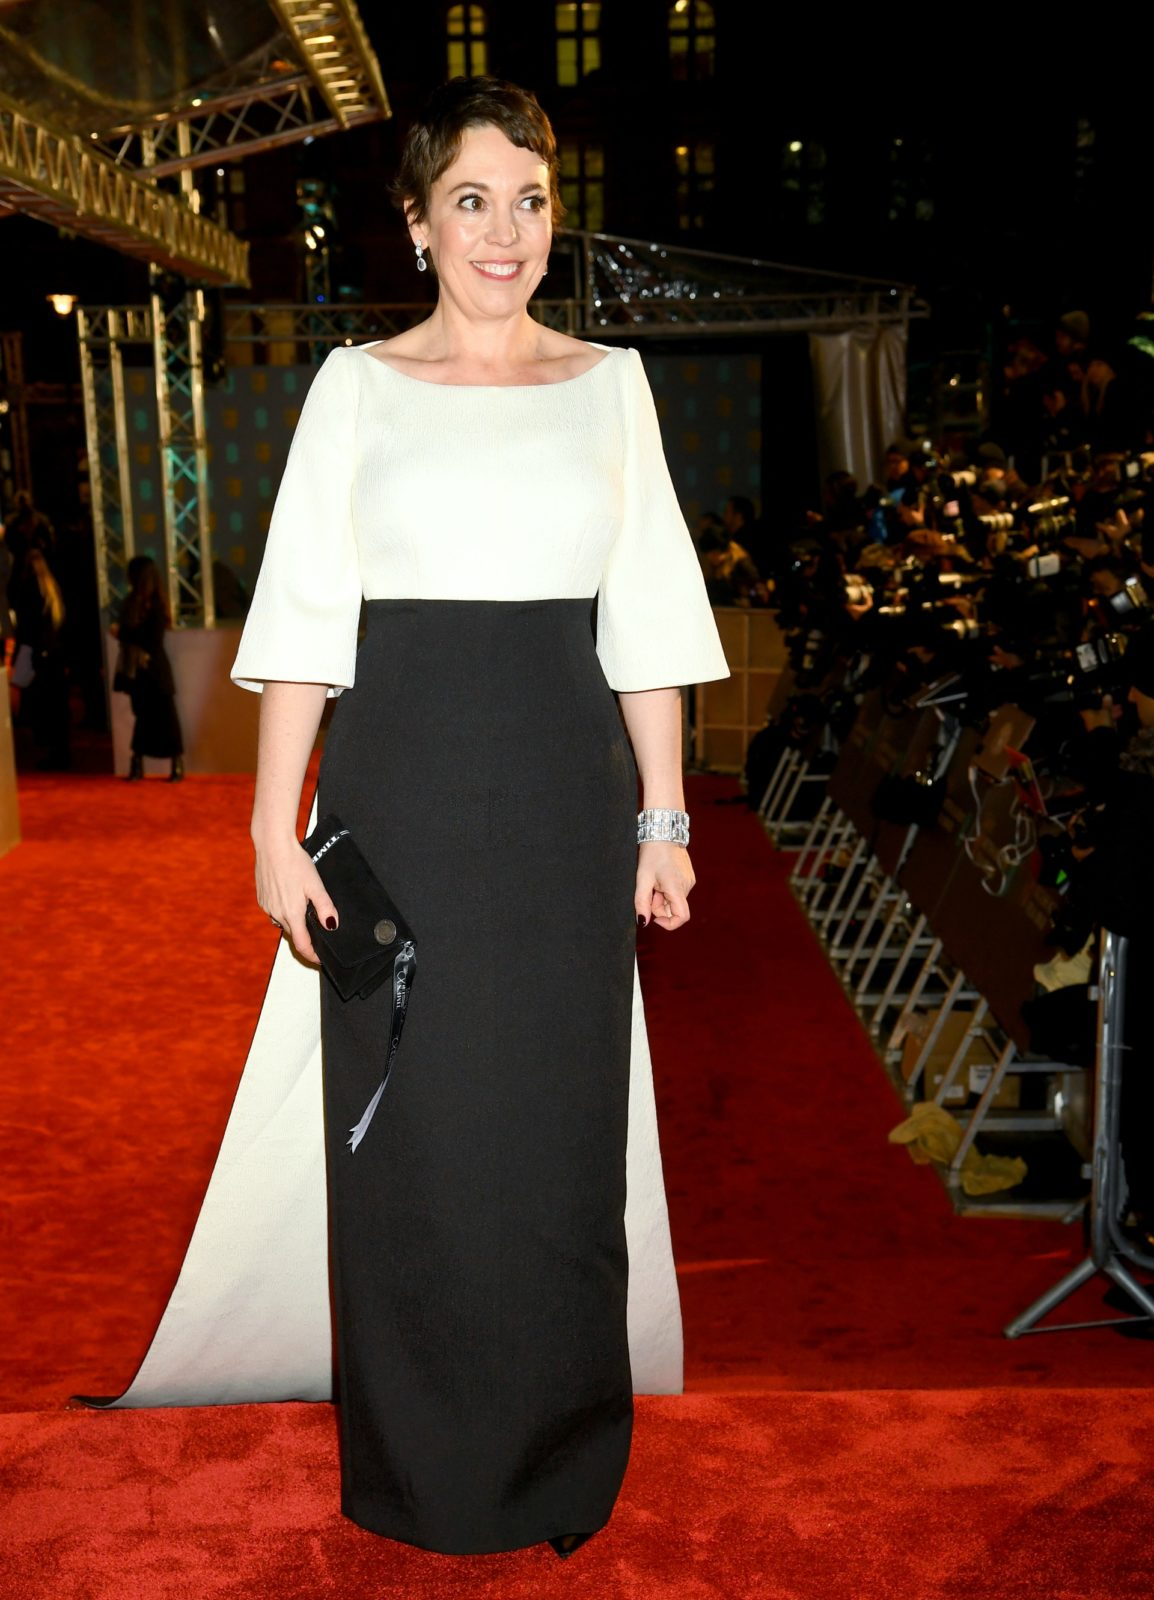 Olivia Colman looked stunning in a monochrome outfit. Source: Getty